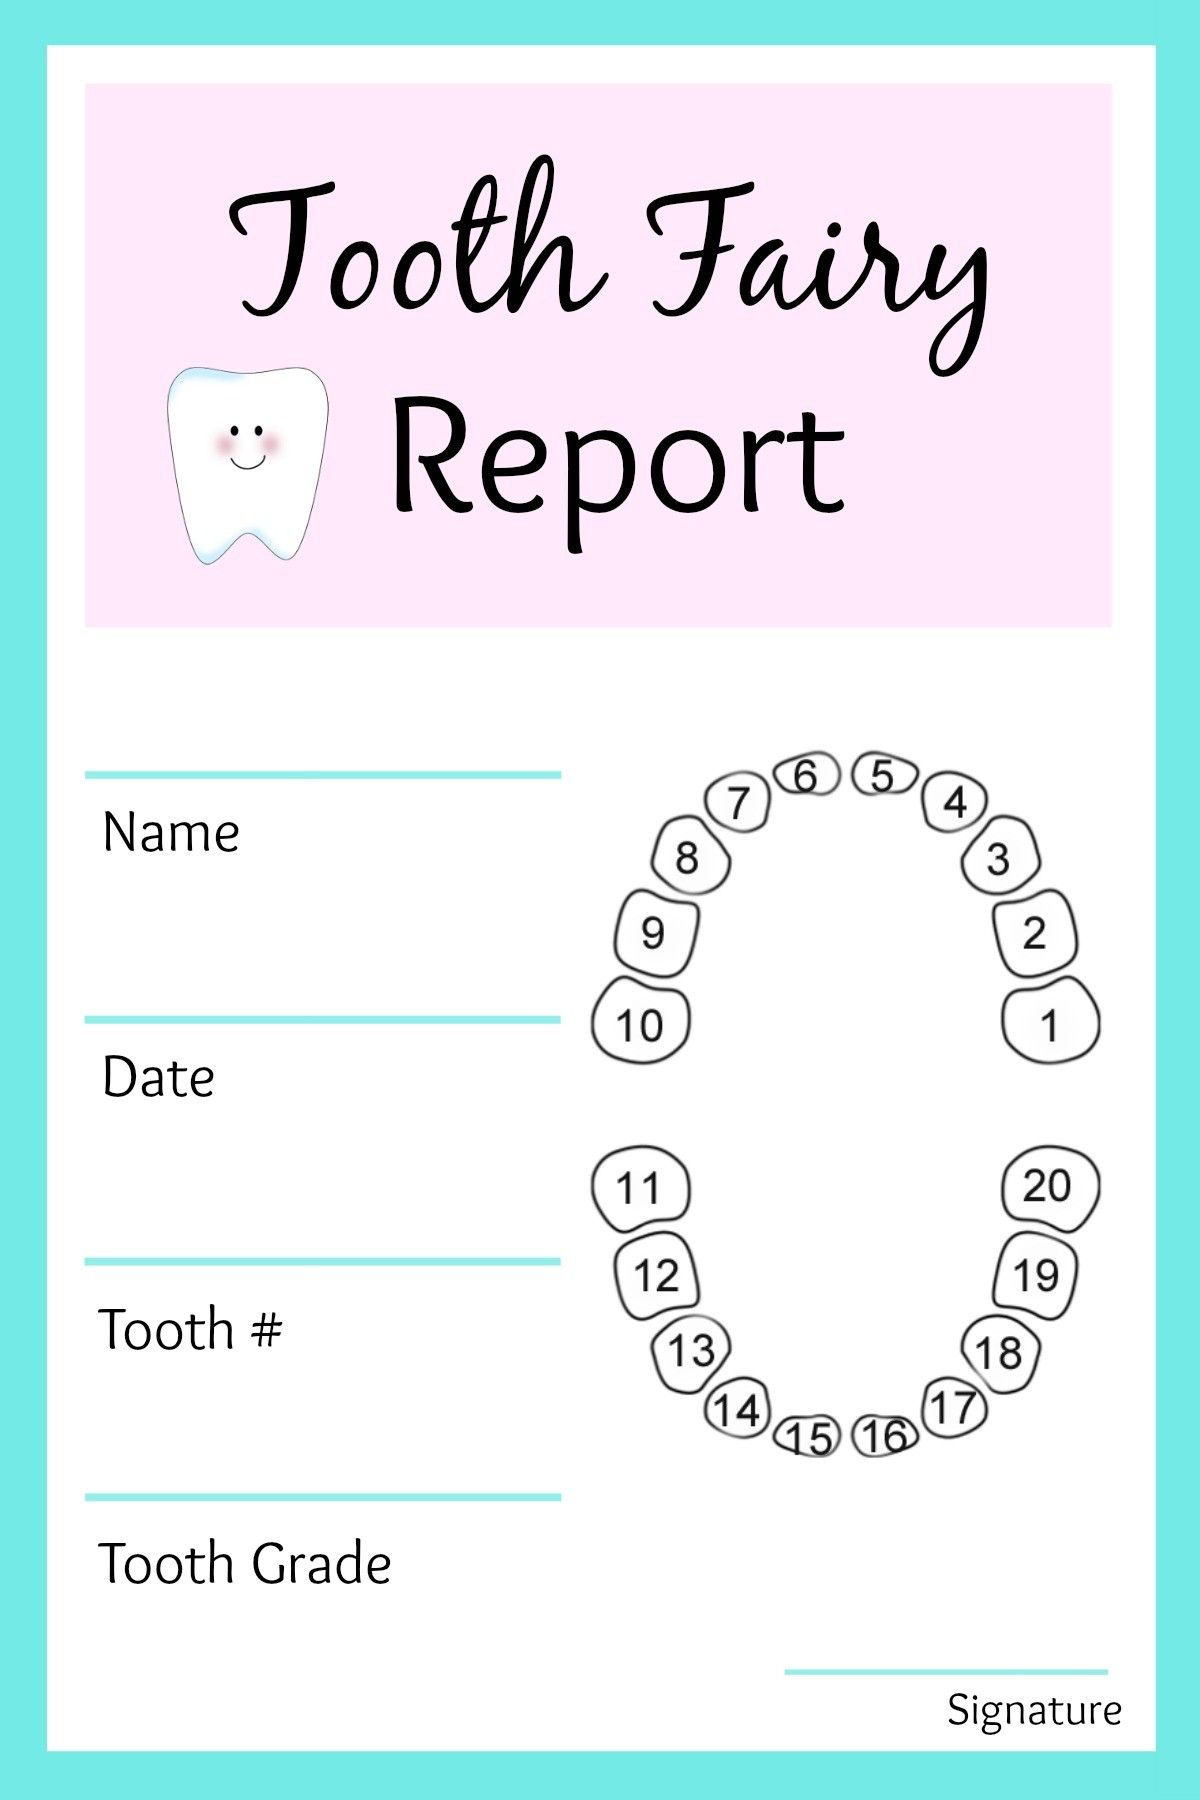 Tooth Fairy Letter Template Boy Tooth Fairy Letter Template Boy Will Be A Thing Of The Past In 2020 Tooth Fairy Letter Tooth Fairy Letter Template Tooth Fairy